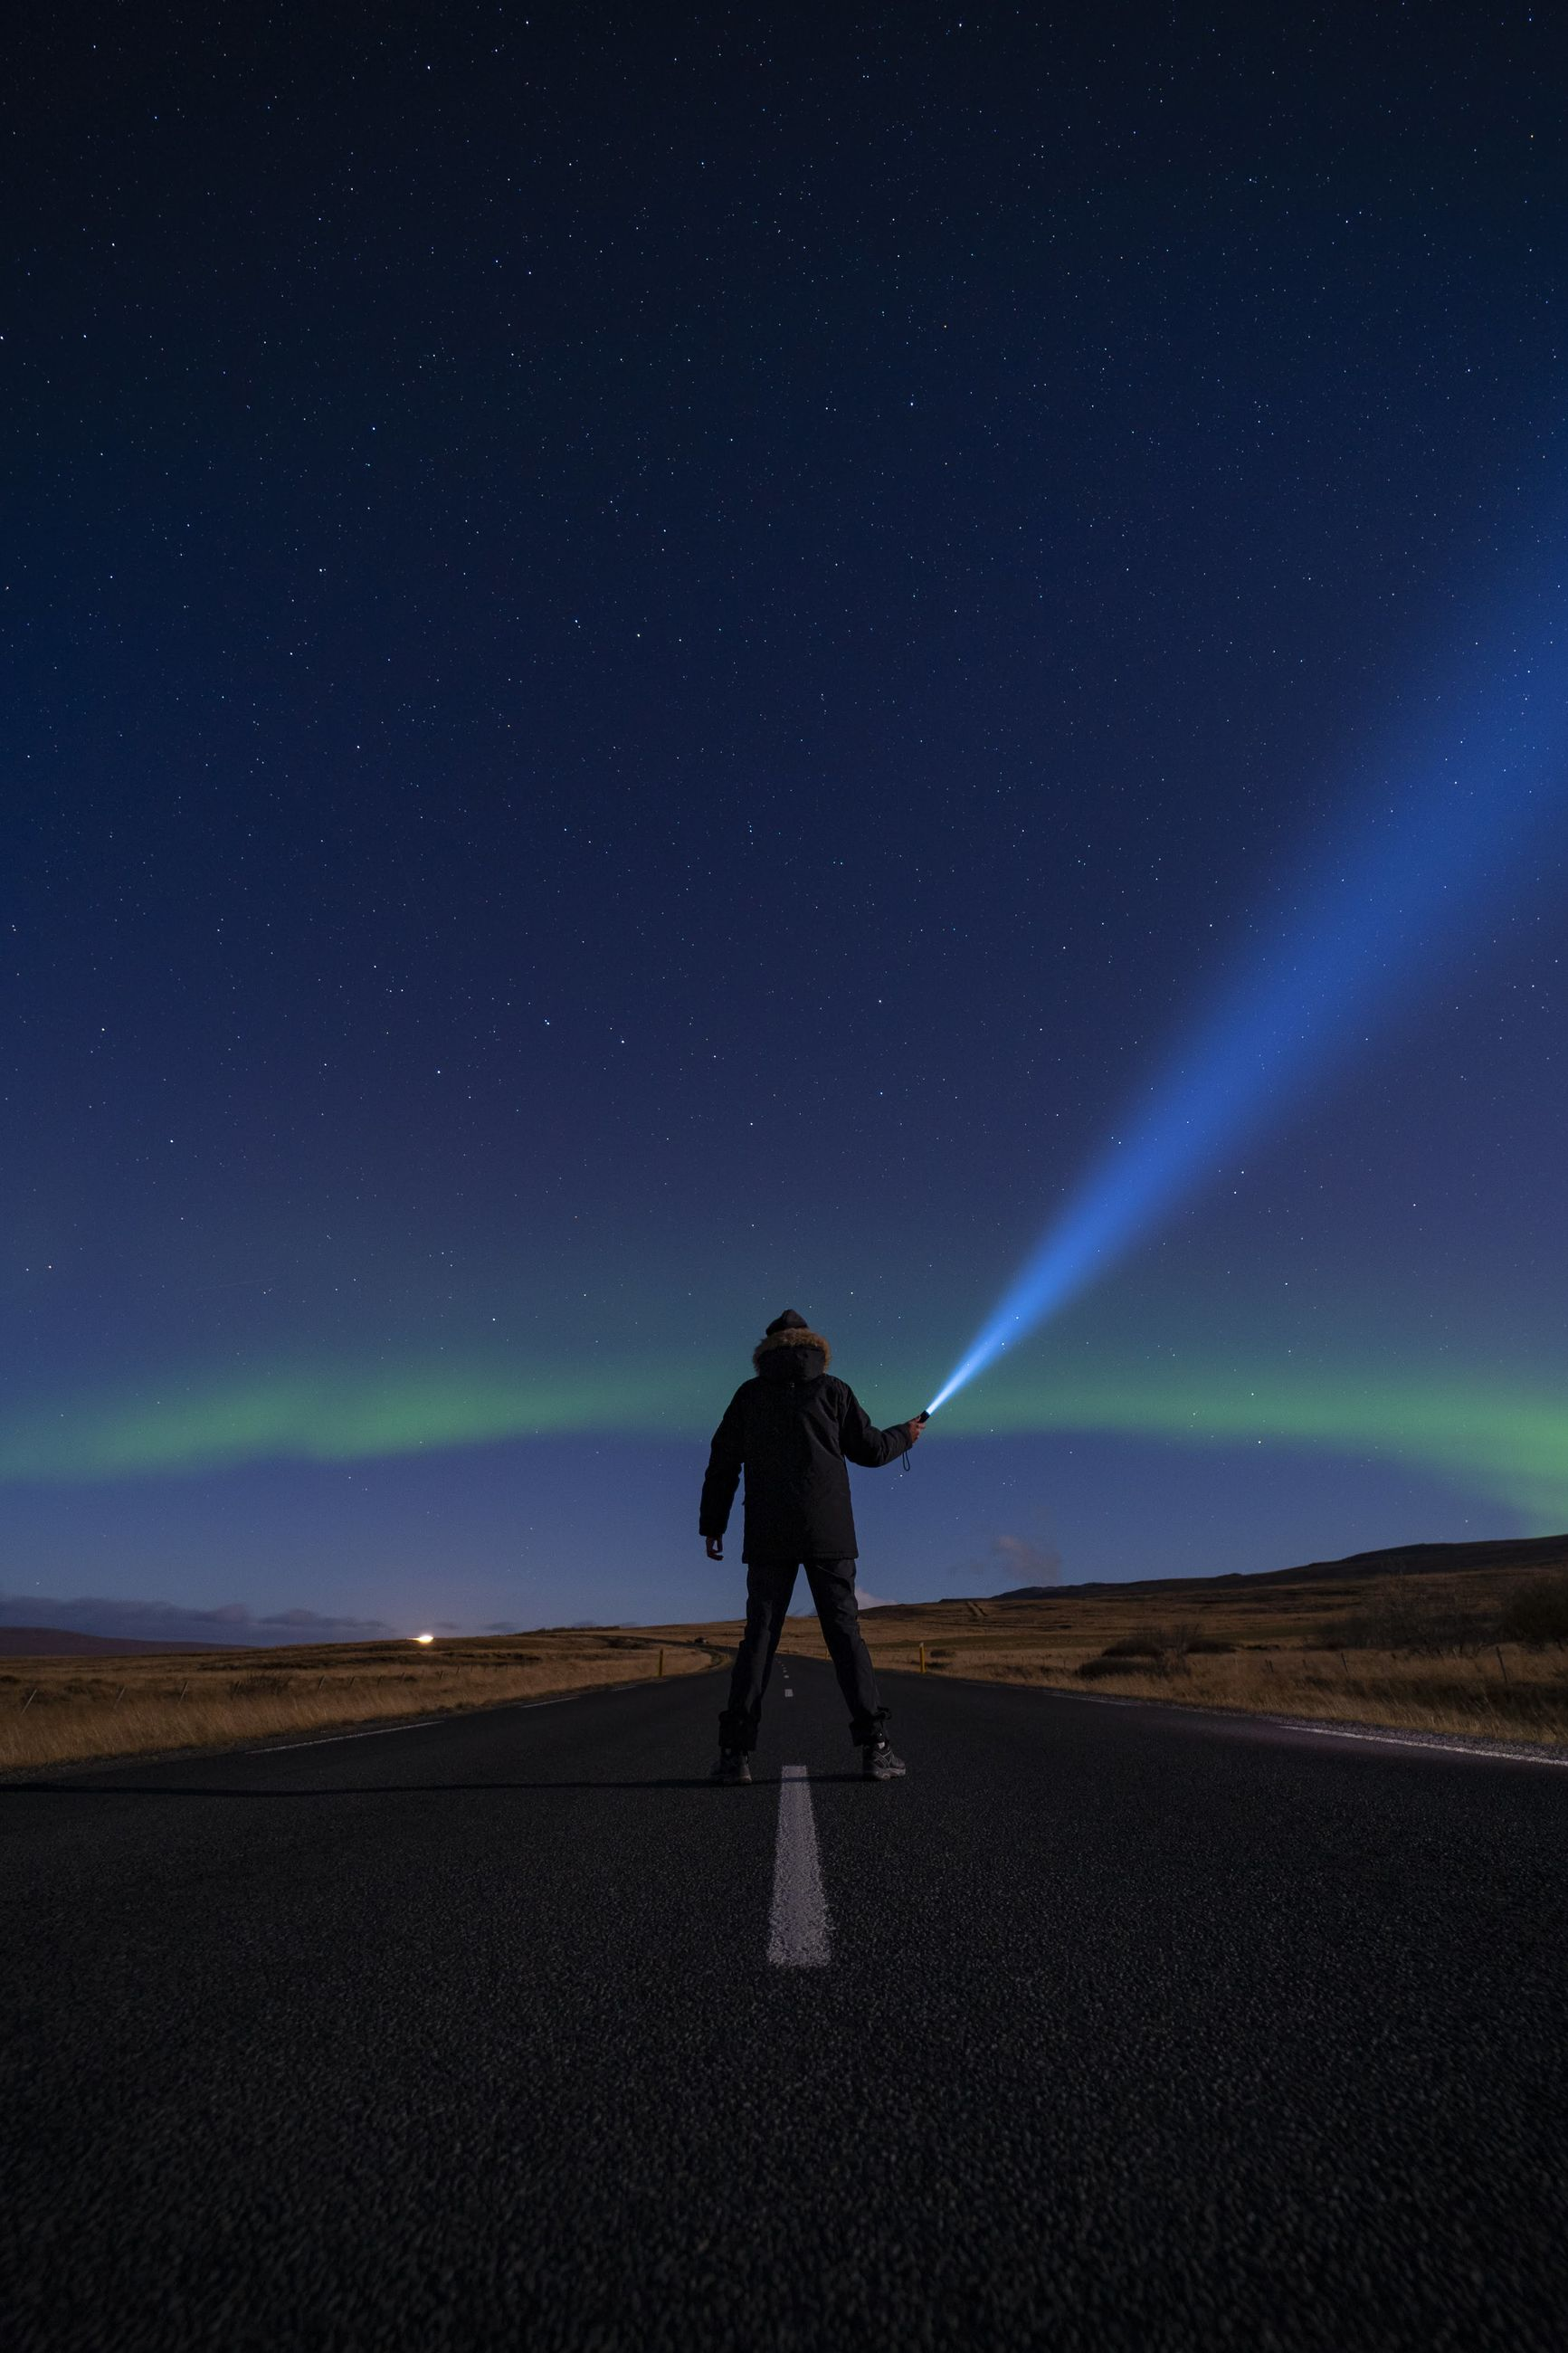 Rear view of man holding illuminated flashlight while standing on road against sky at night